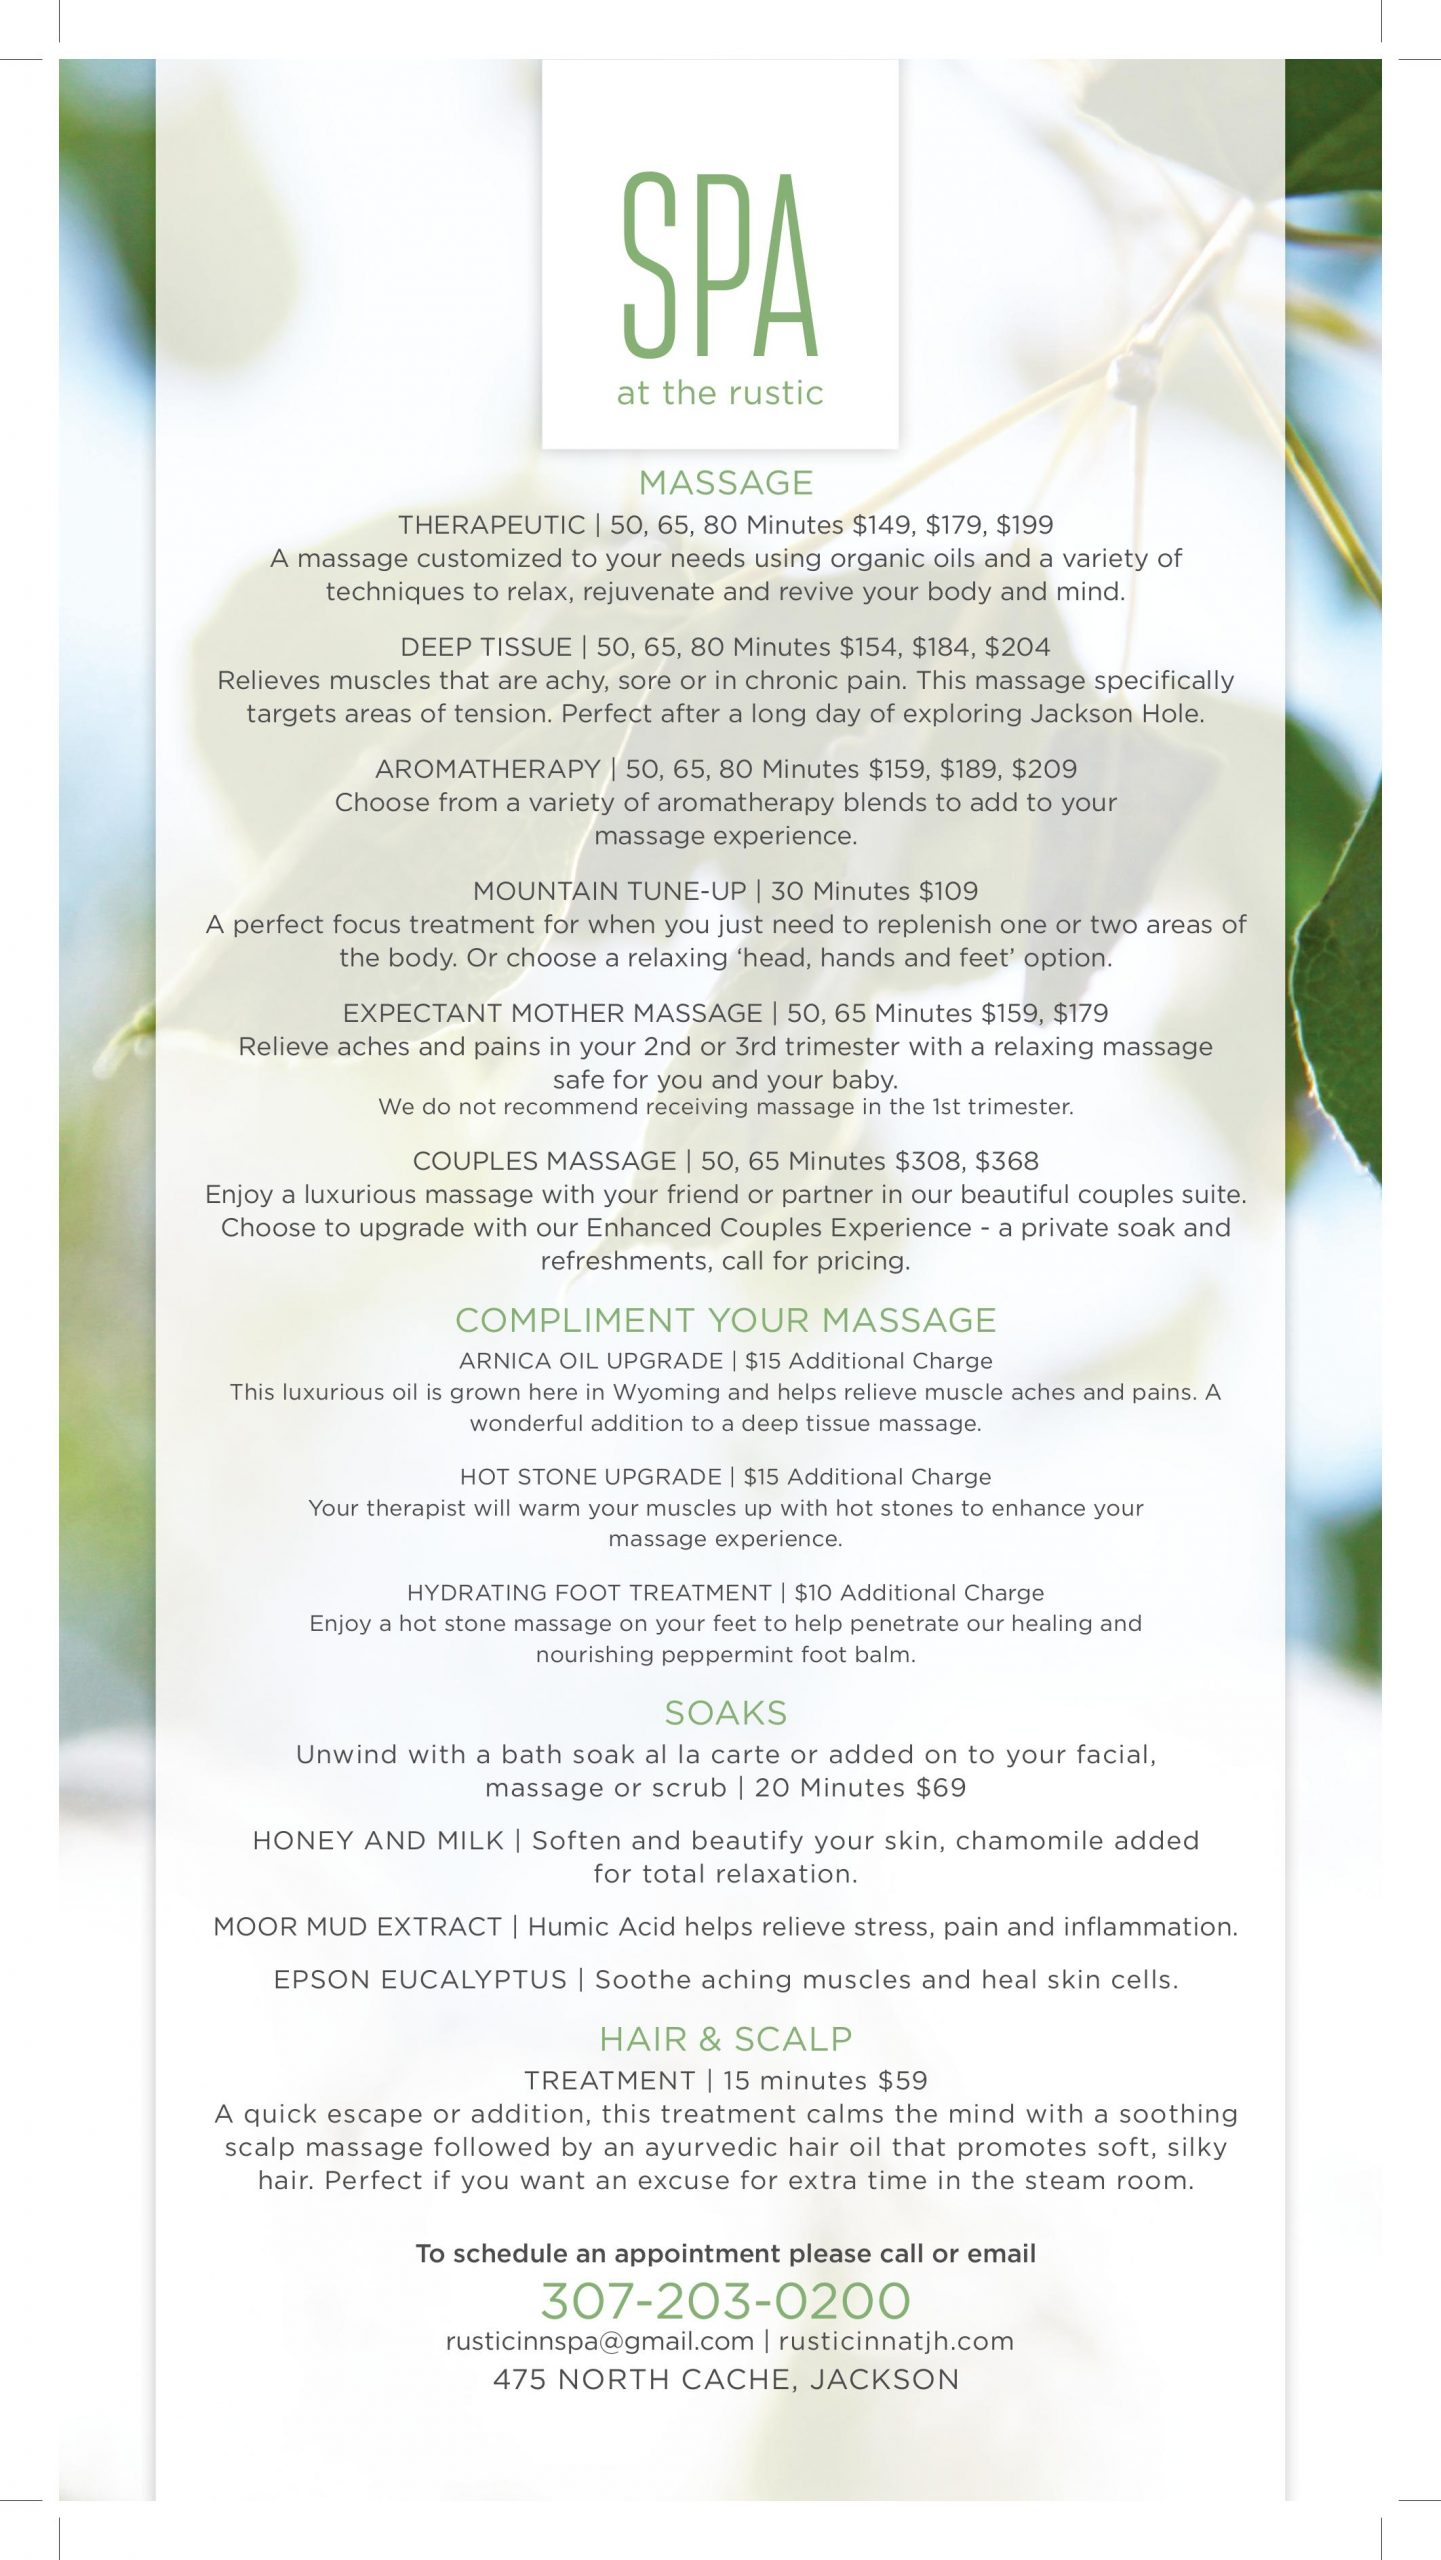 Spa menu and pricing for Rustic Inn